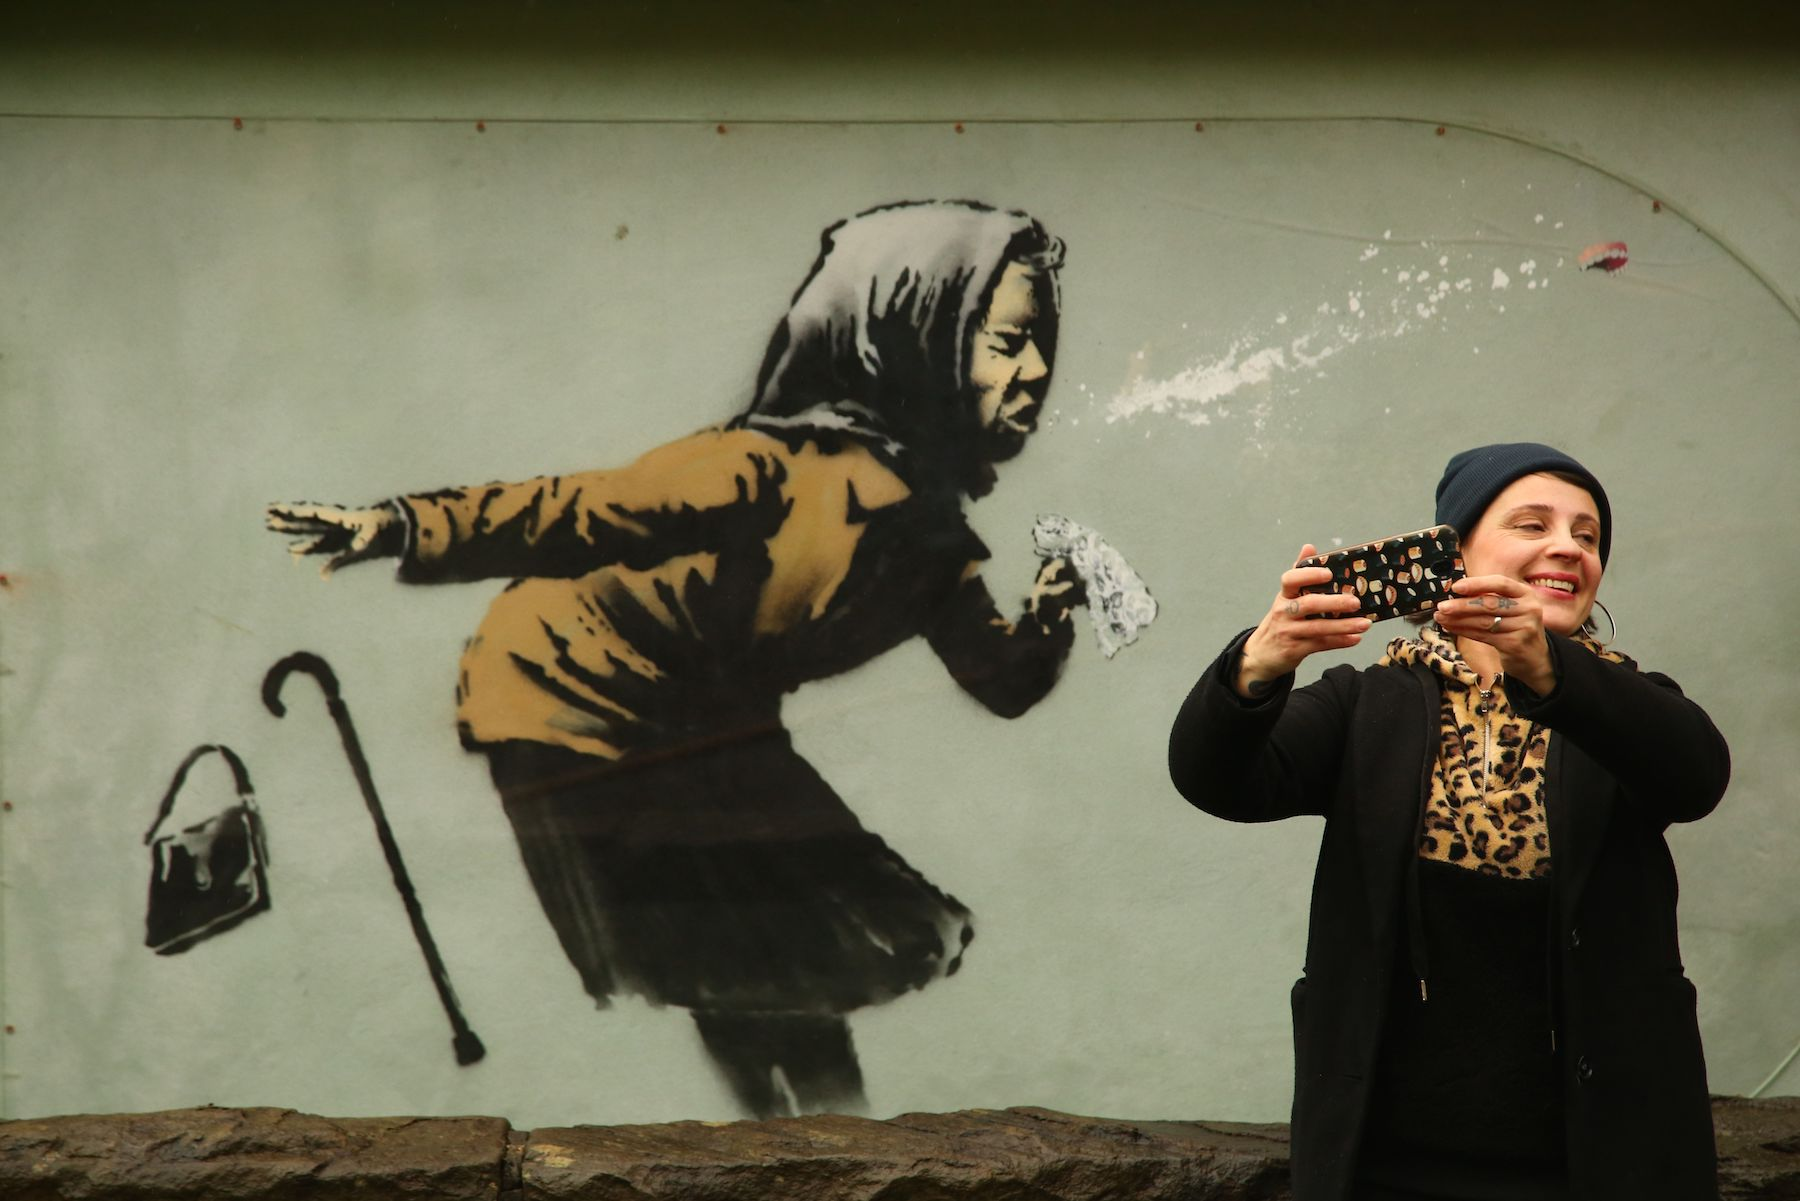 From Banksy's Sneeze in Bristol to Red Bull Arts Closing: The Best and Worst of the Art World This Week | artnet News